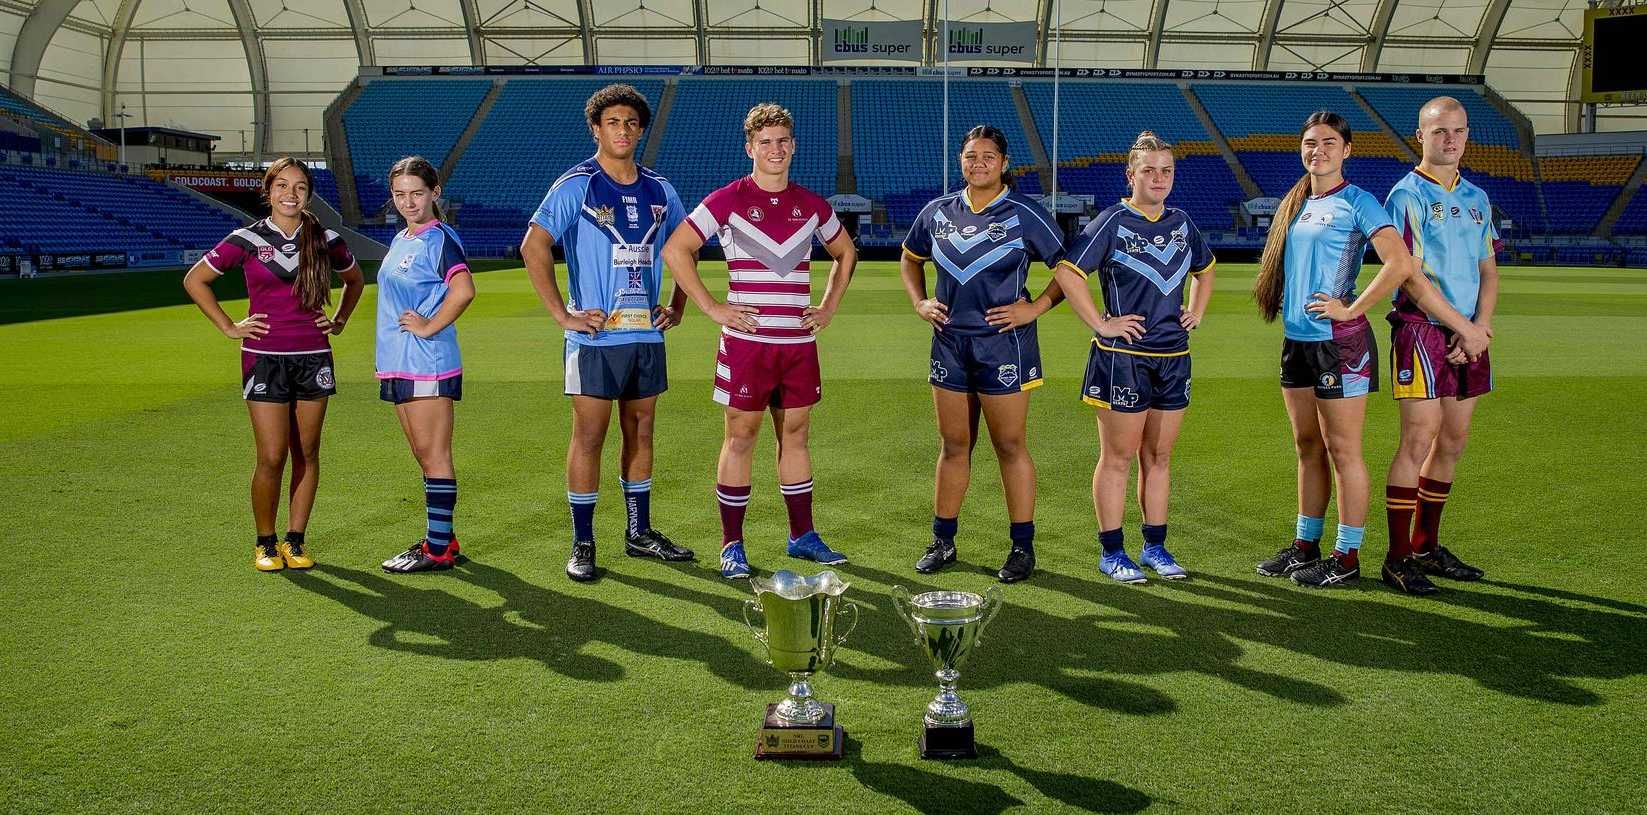 Marymount College v Marsden SHS and Marymount College v St Michael's College